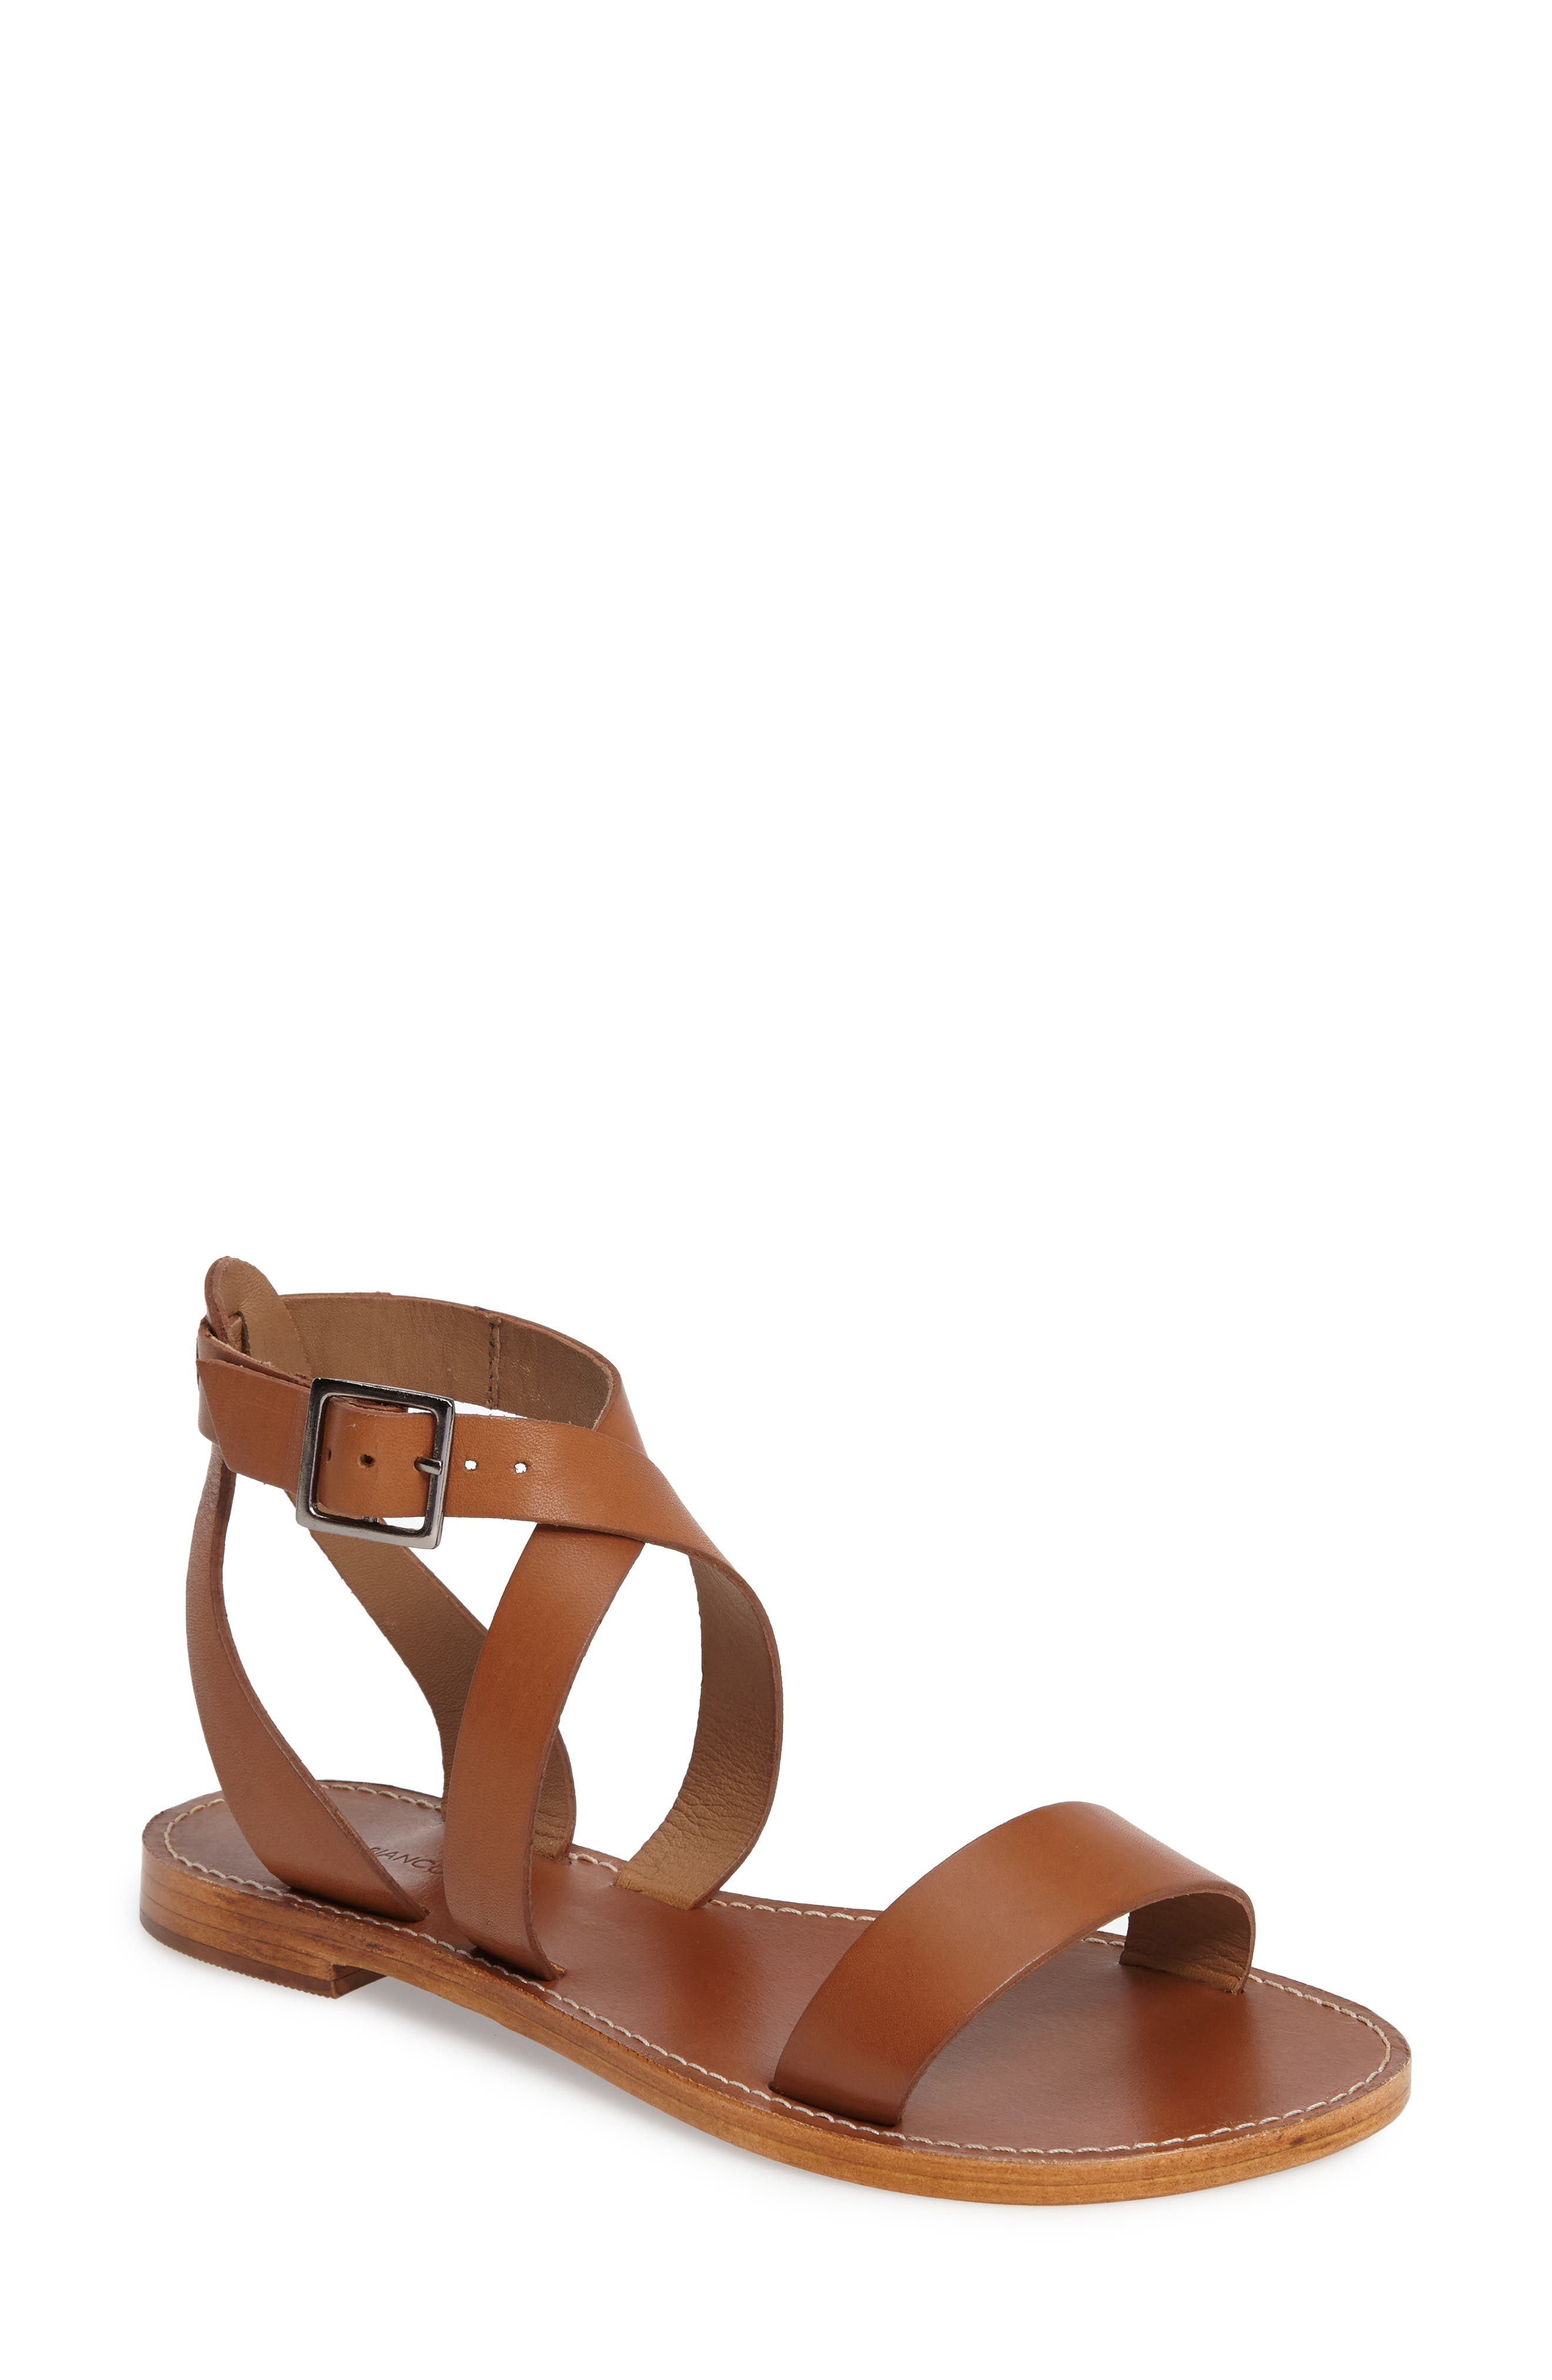 Alternate Image 1 Selected - Tony Bianco Flo Ankle Strap Sandal (Women)